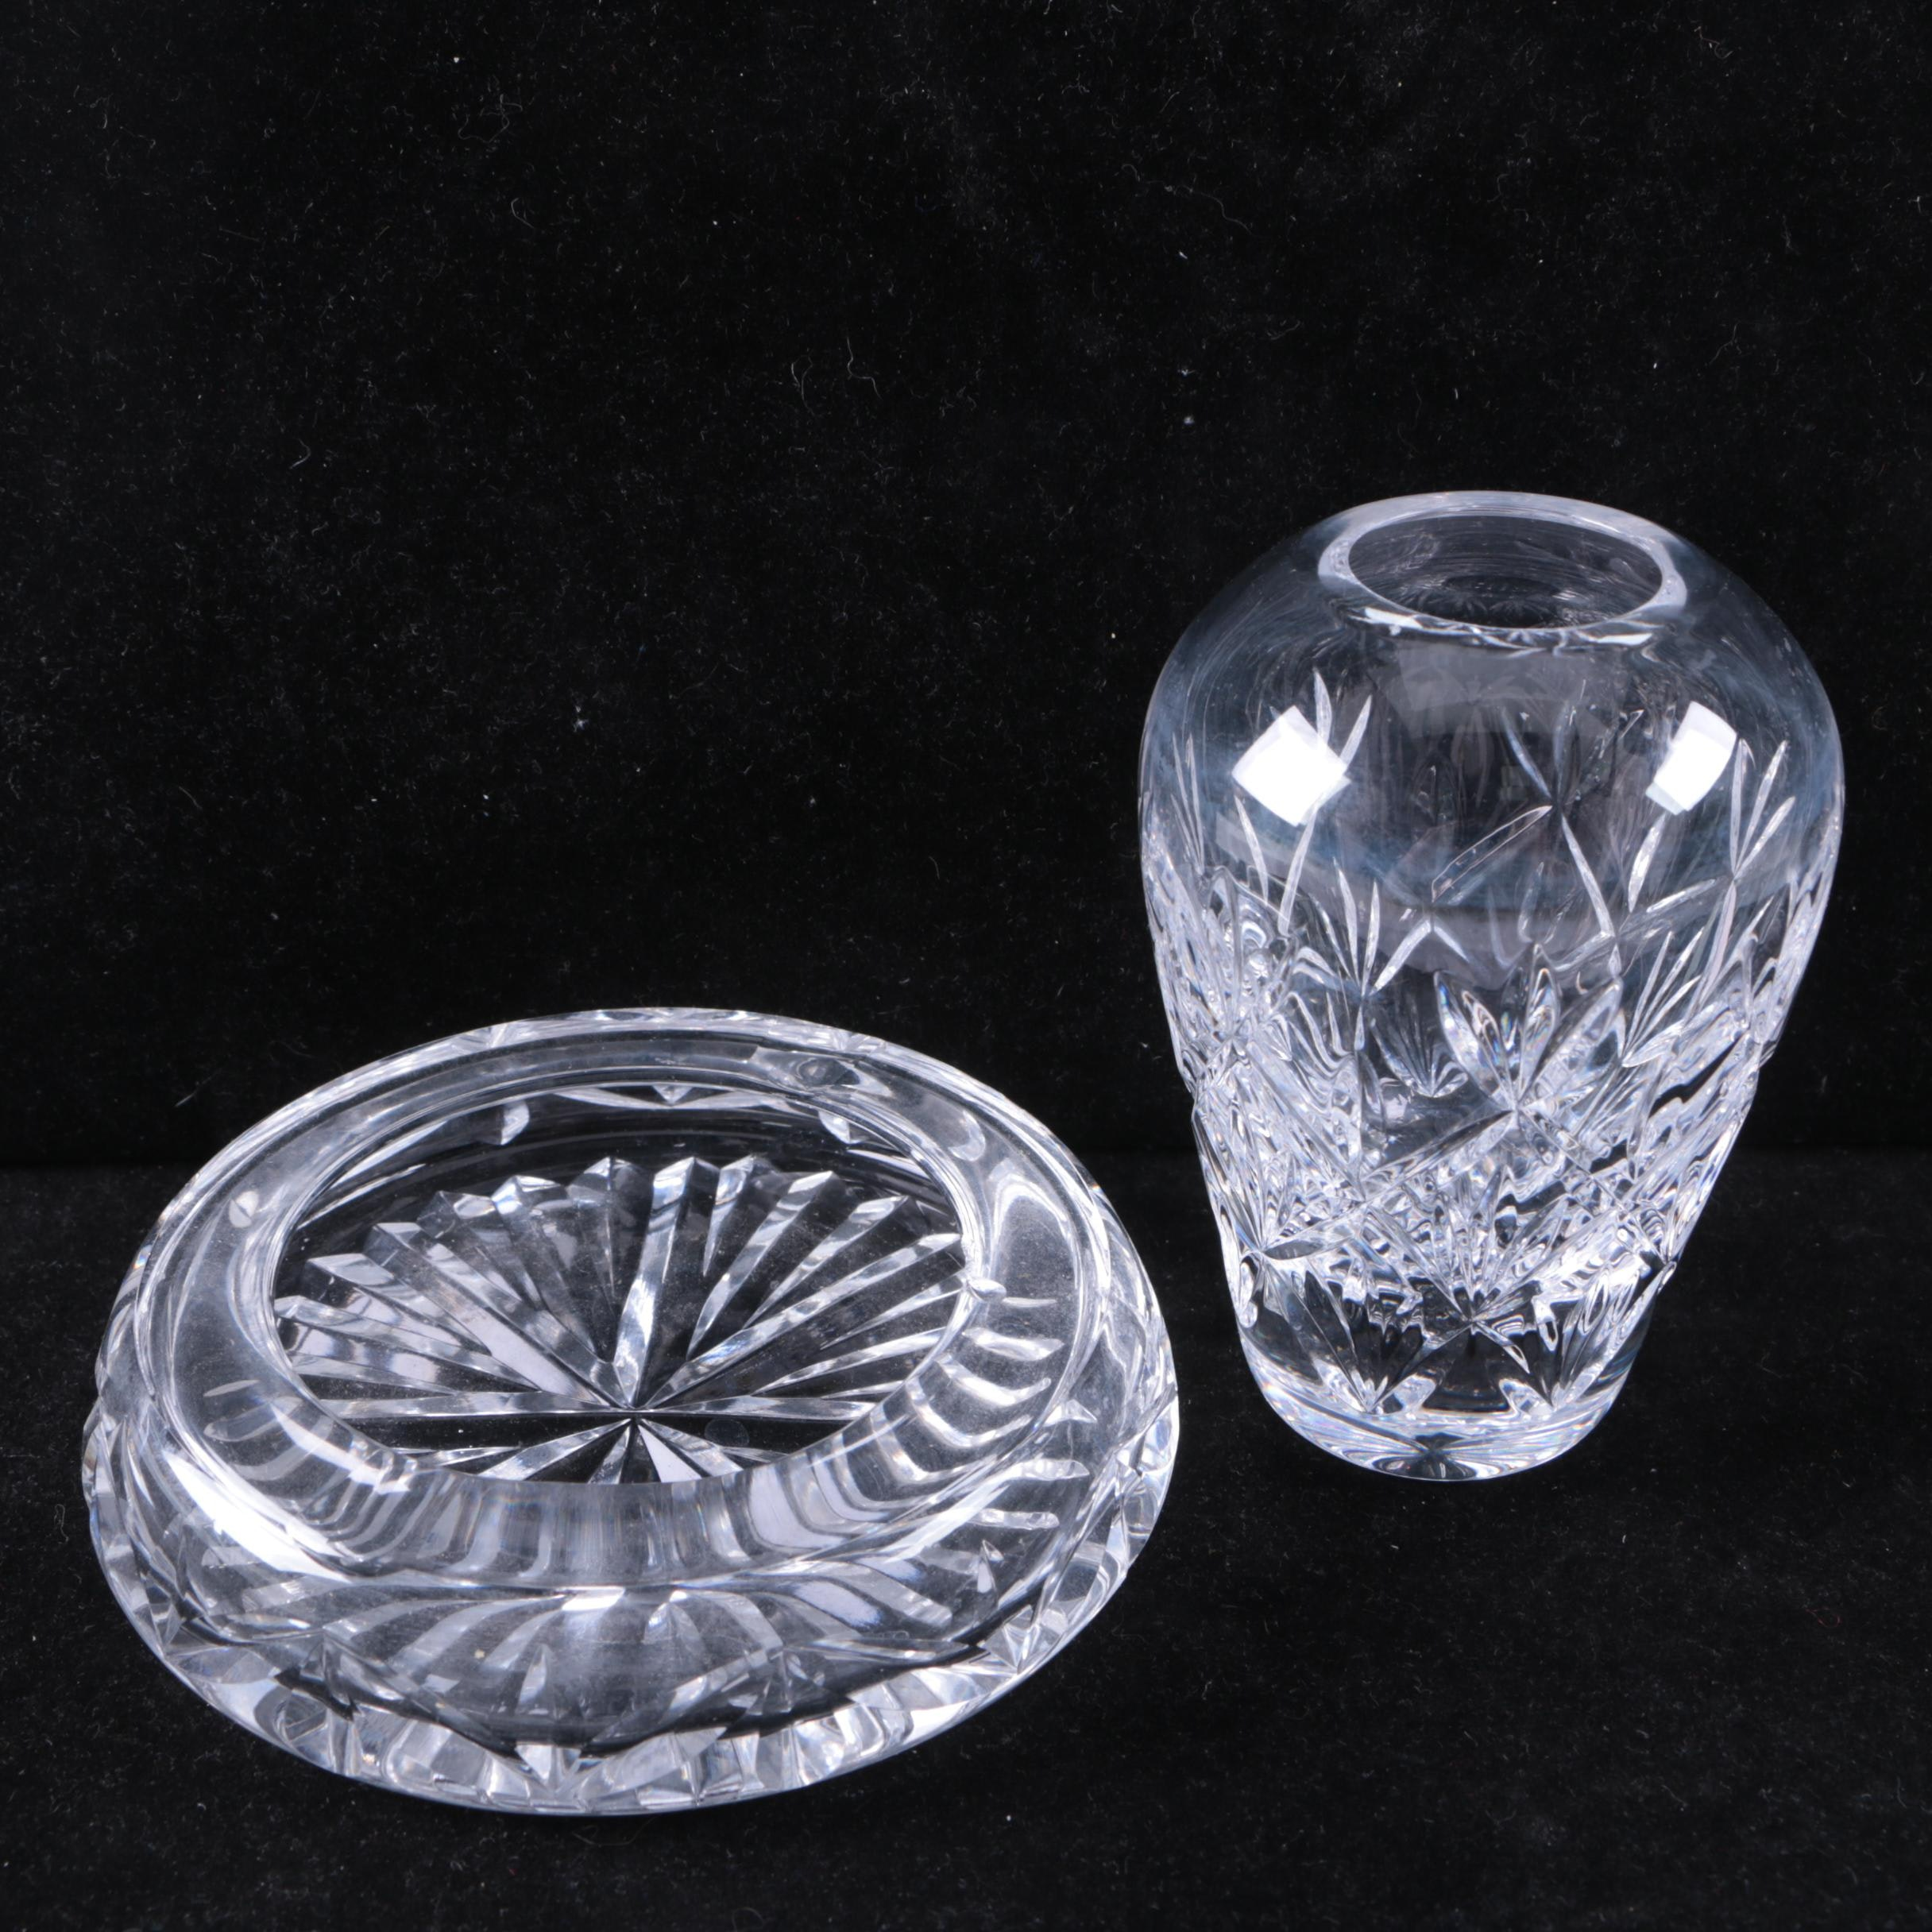 Tiffany & Co. Crystal Vase and Waterford Crystal Ash Receiver